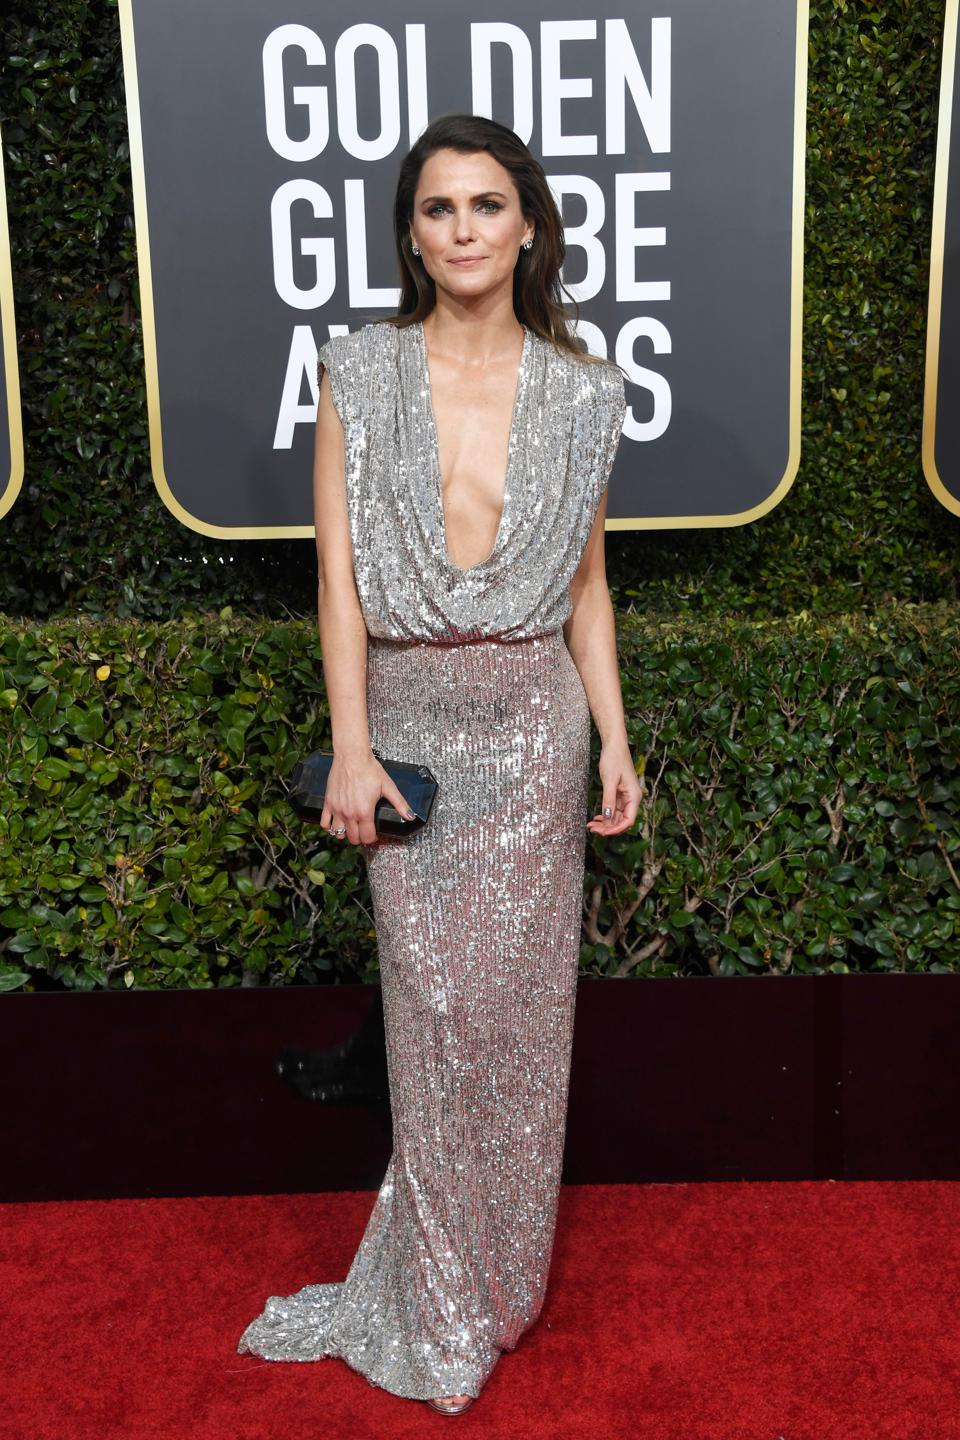 Keri Russell looks gorgeous in a plunging metallic ensemble by Monique Lhuillier.